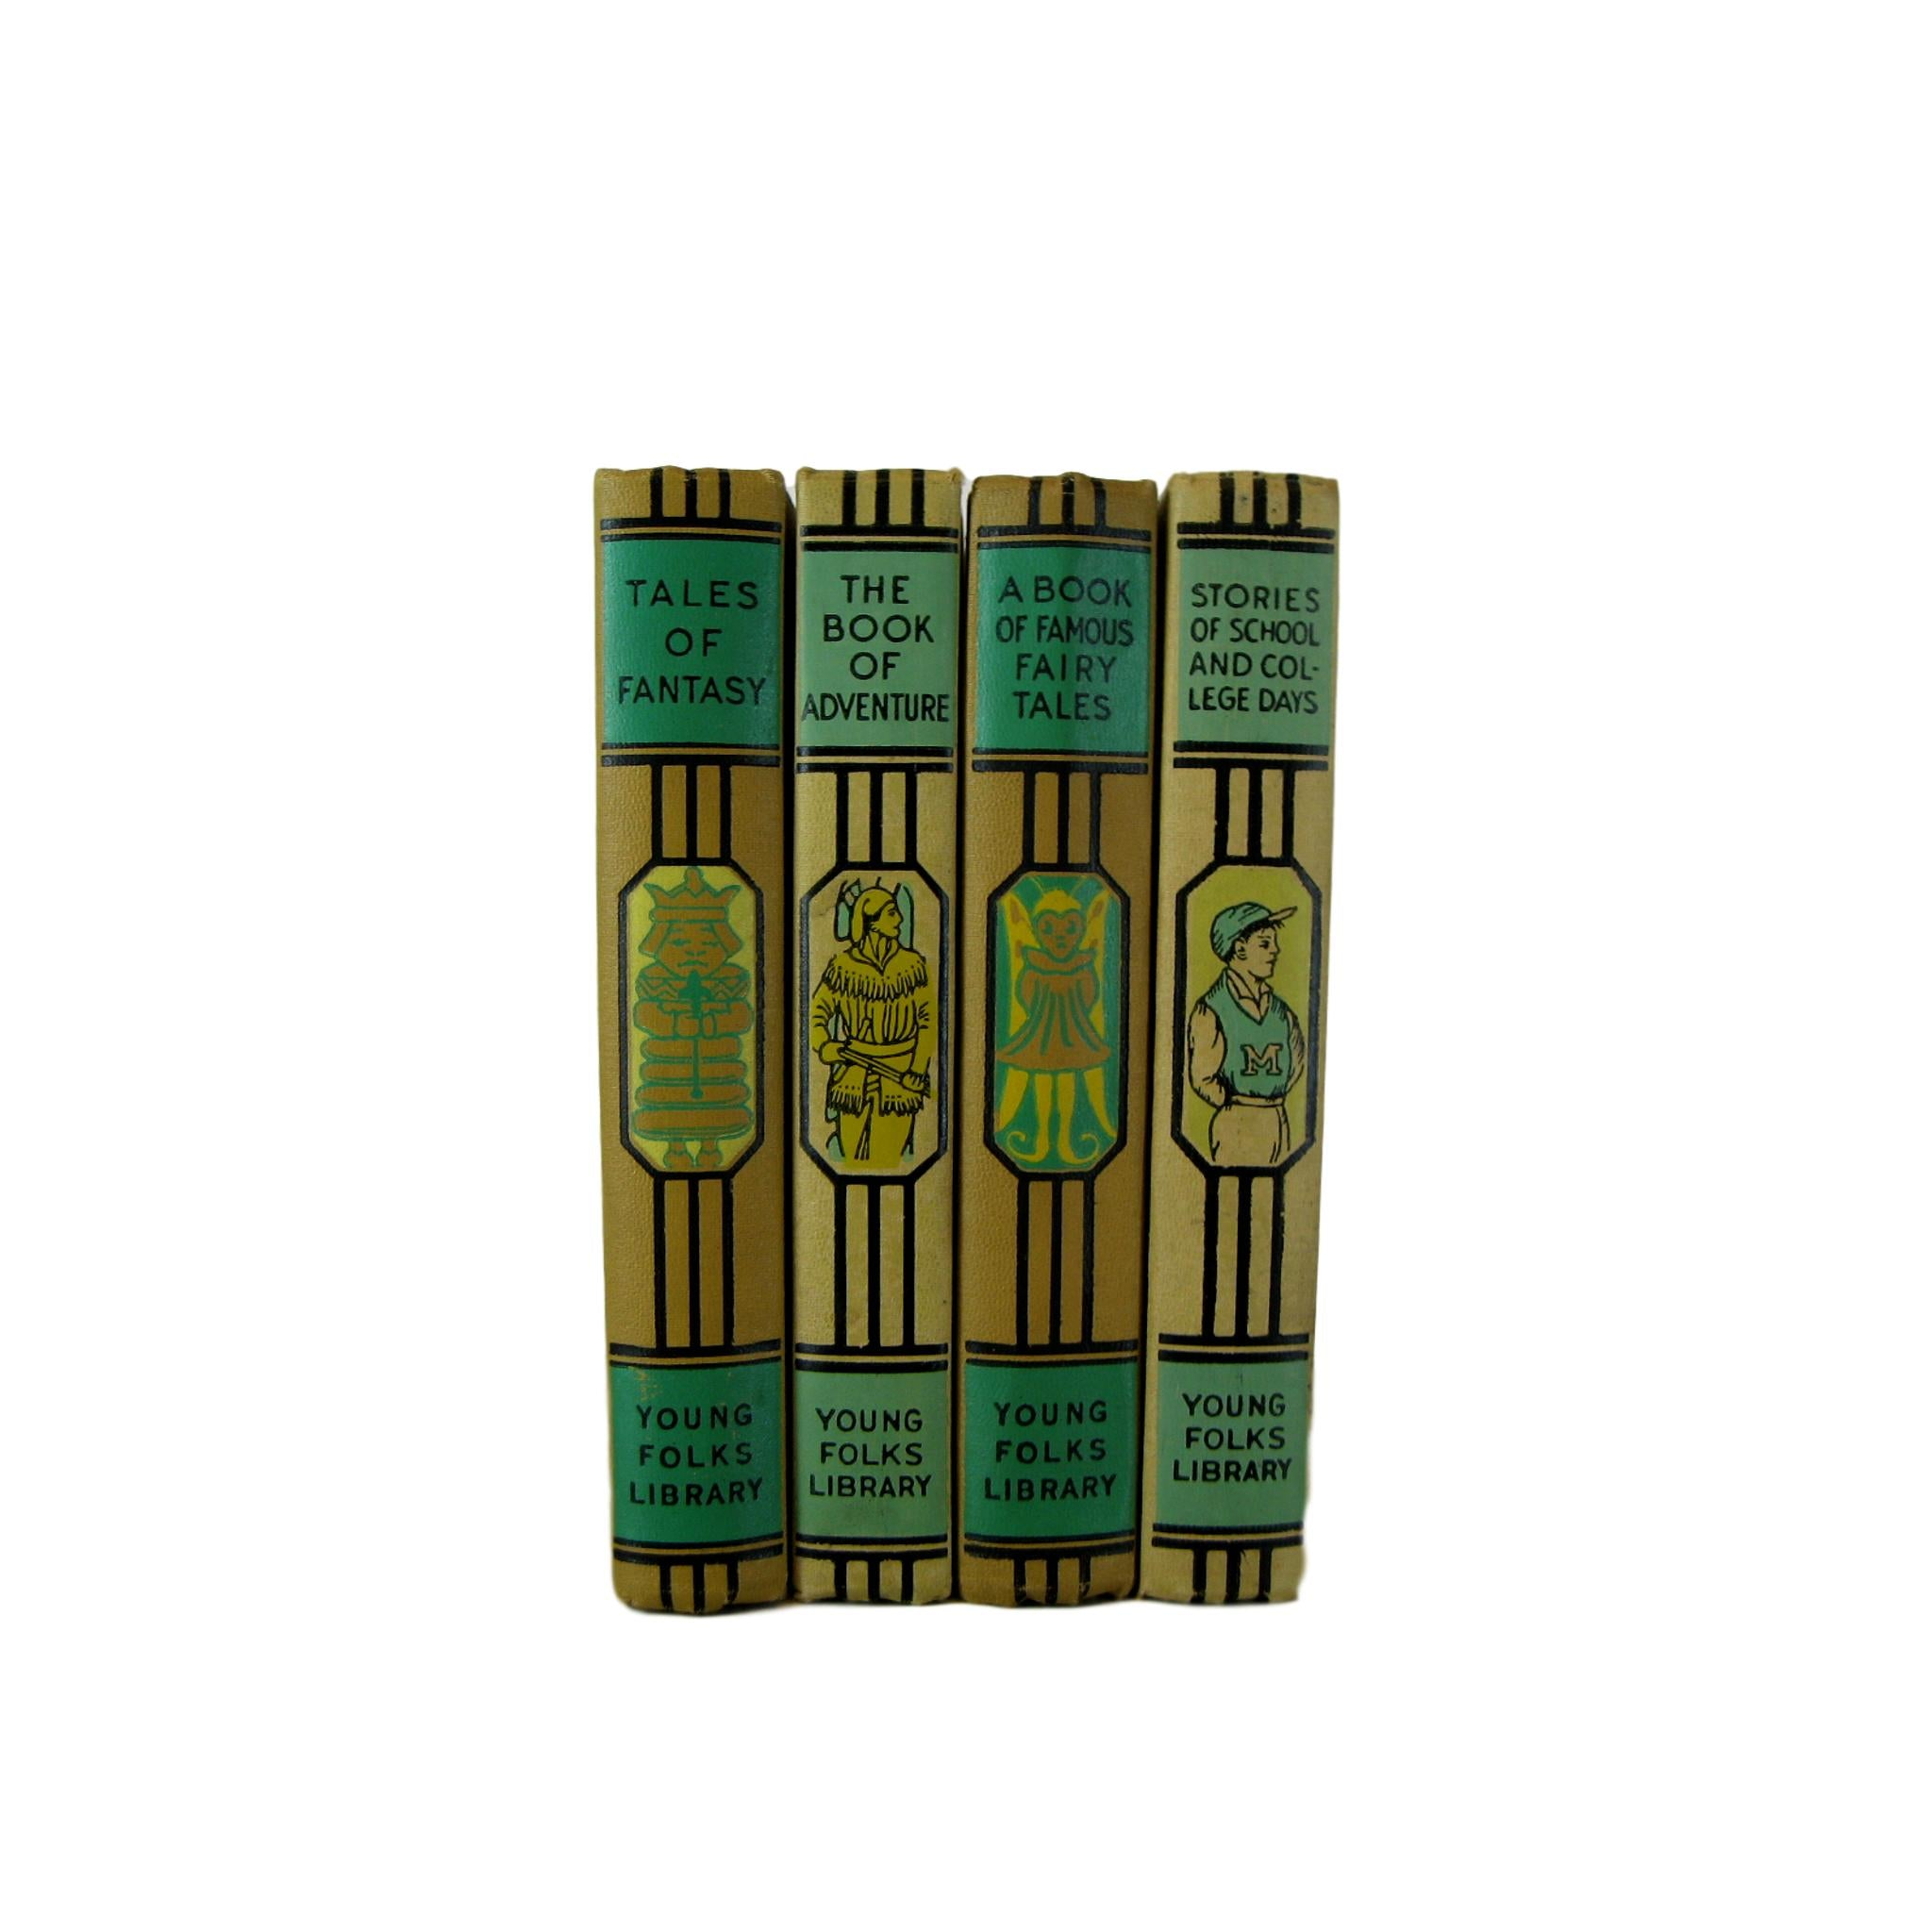 Mid-Century Decorative Children's Books for Nursery Design, S/4 - Decades of Vintage